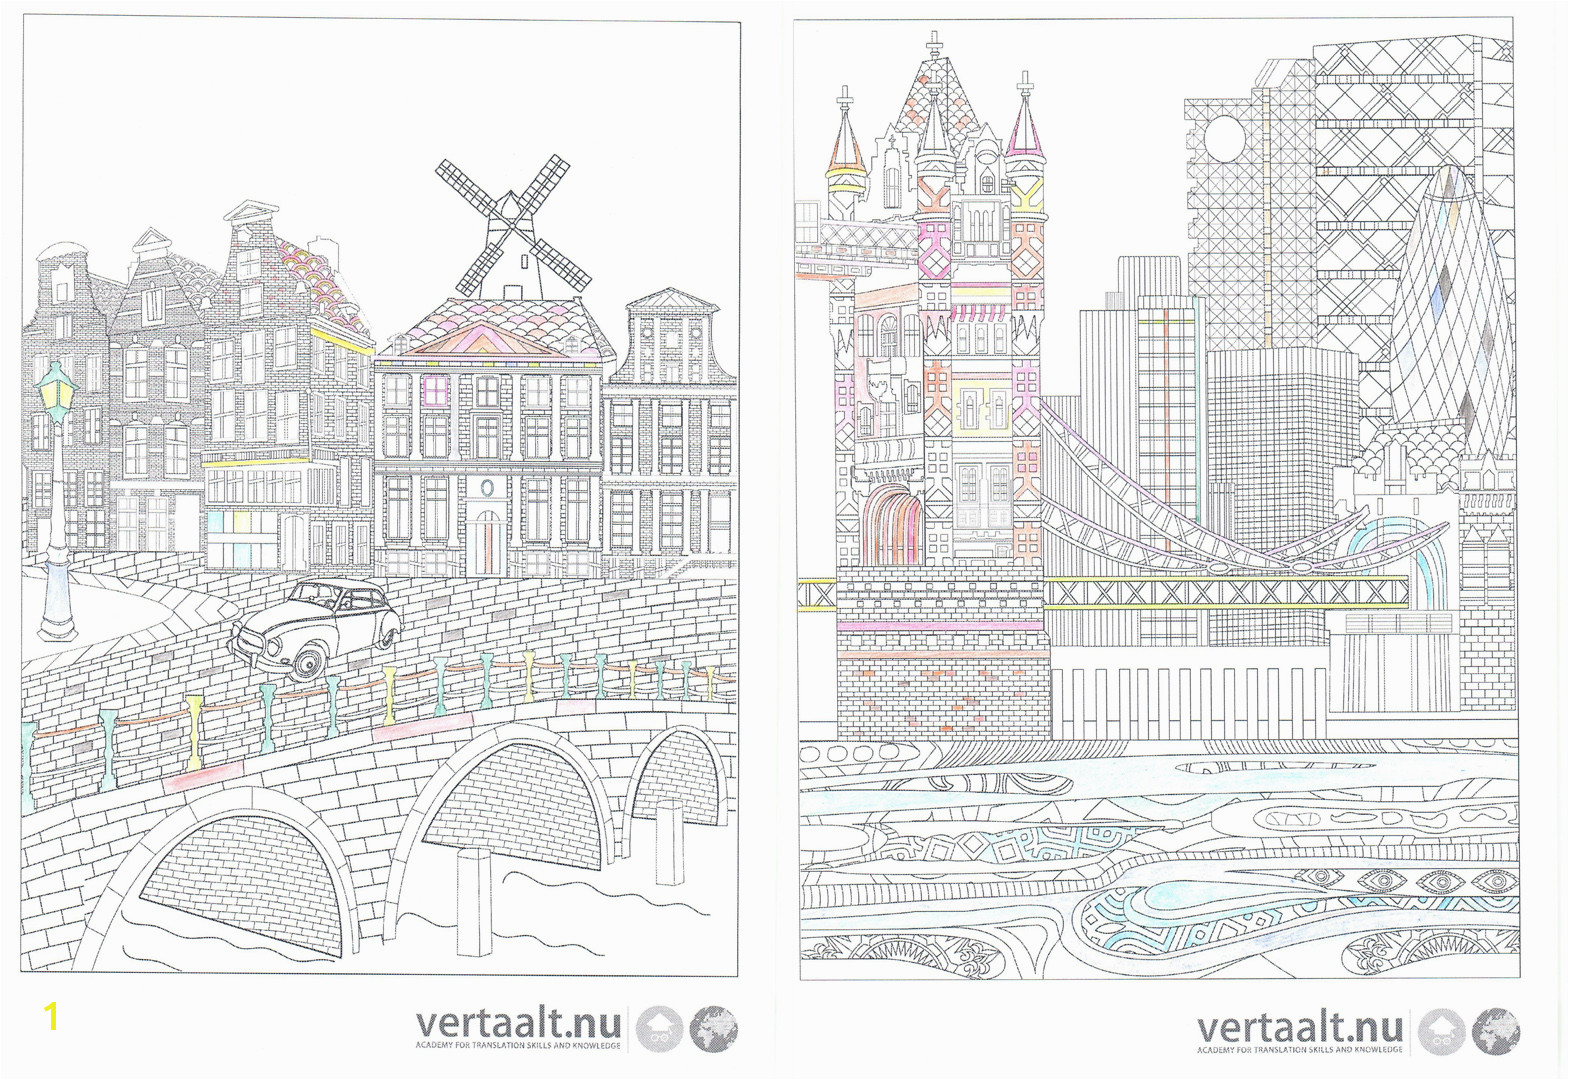 City Coloring Pages for Adults Five Free Translation themed Adult Coloring Pages Vertaalt